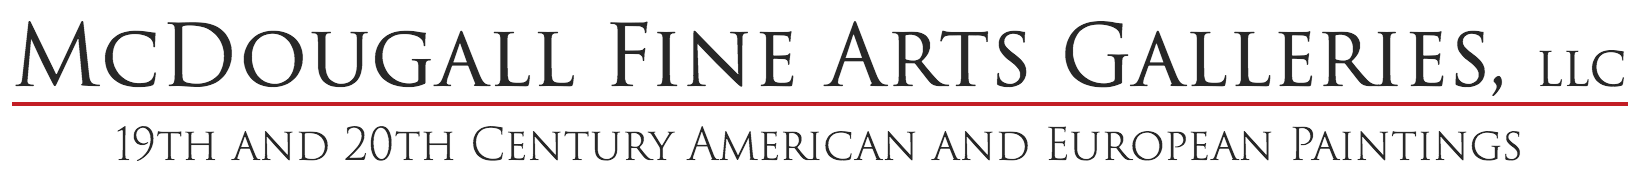 mcdougall fine arts galleries logo